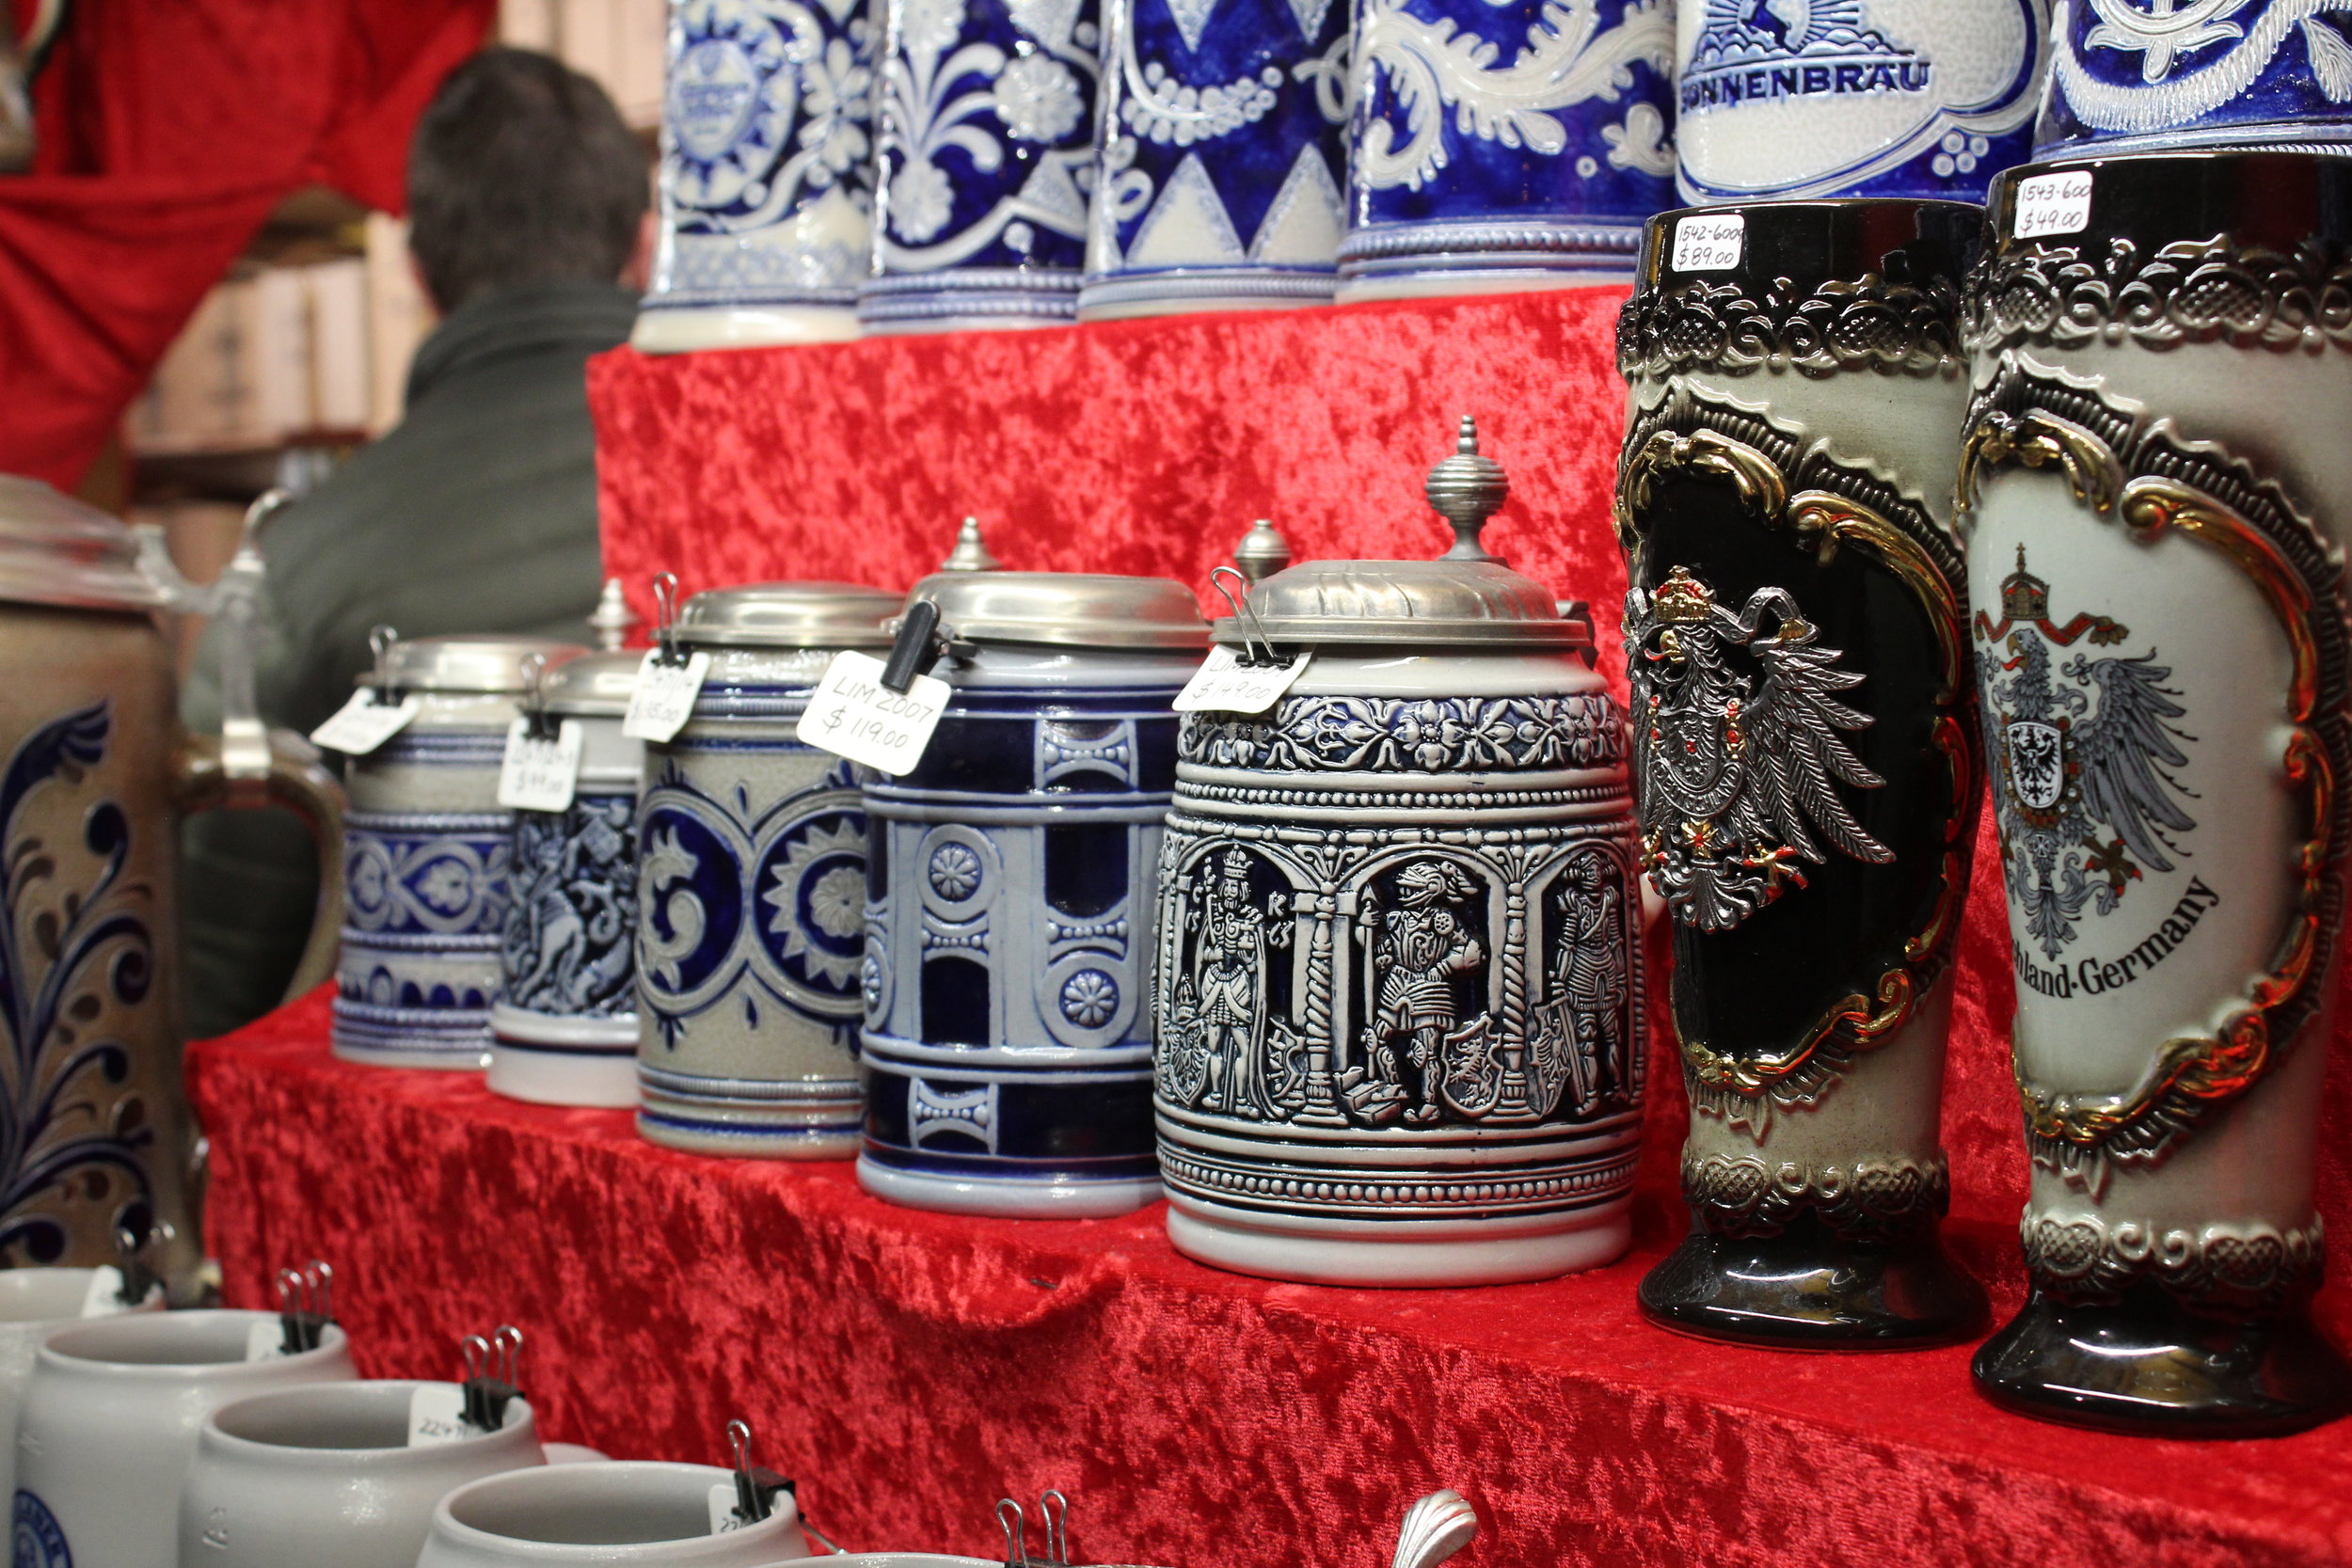 If beer stein is on your list, you can find a wide selection here!